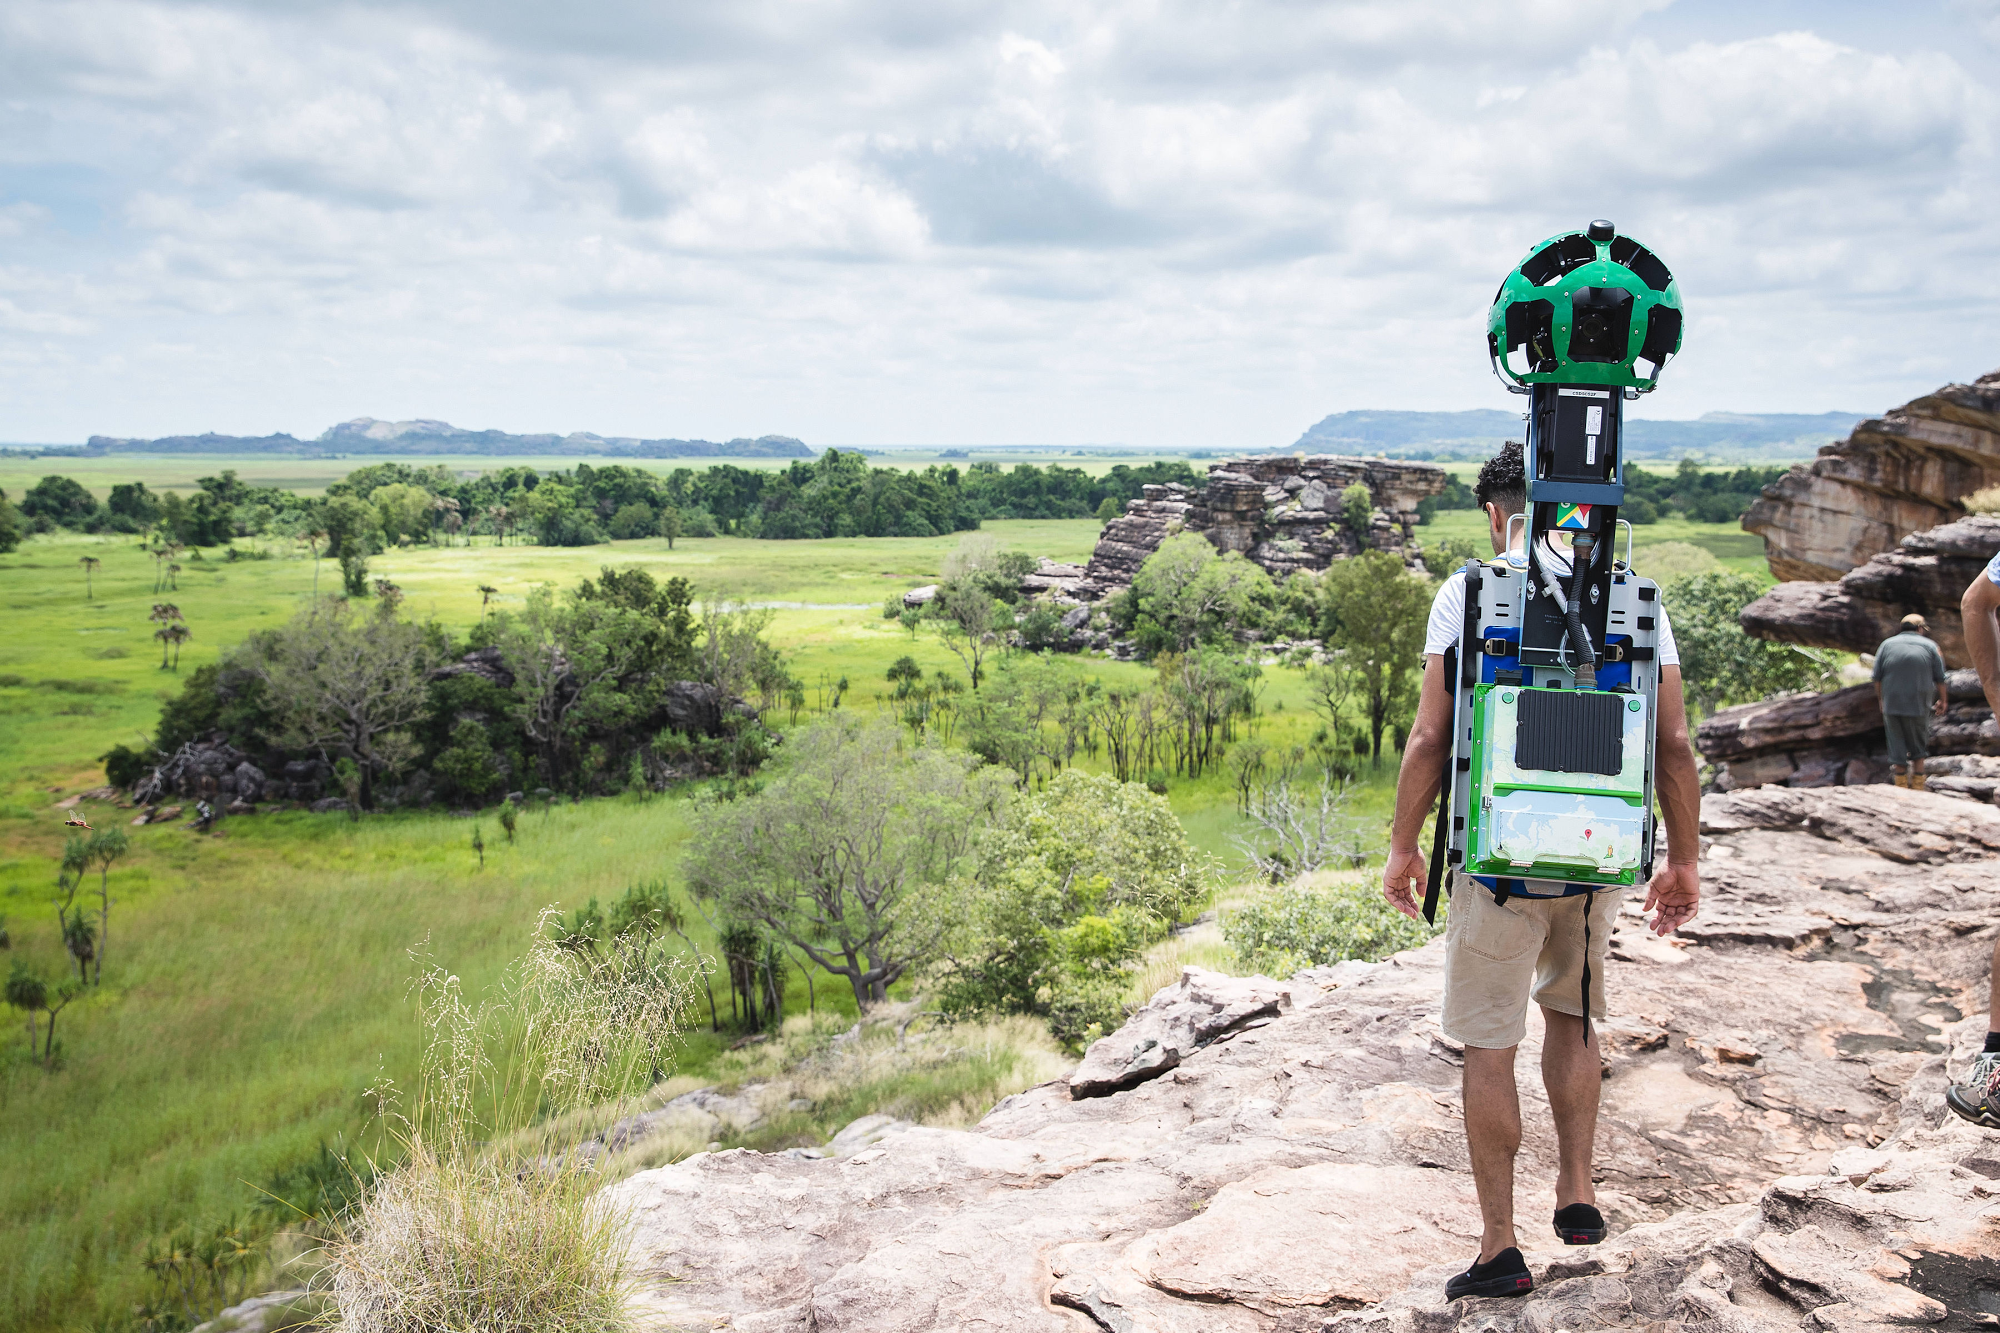 Take a walk through Kakadu on Google Street View